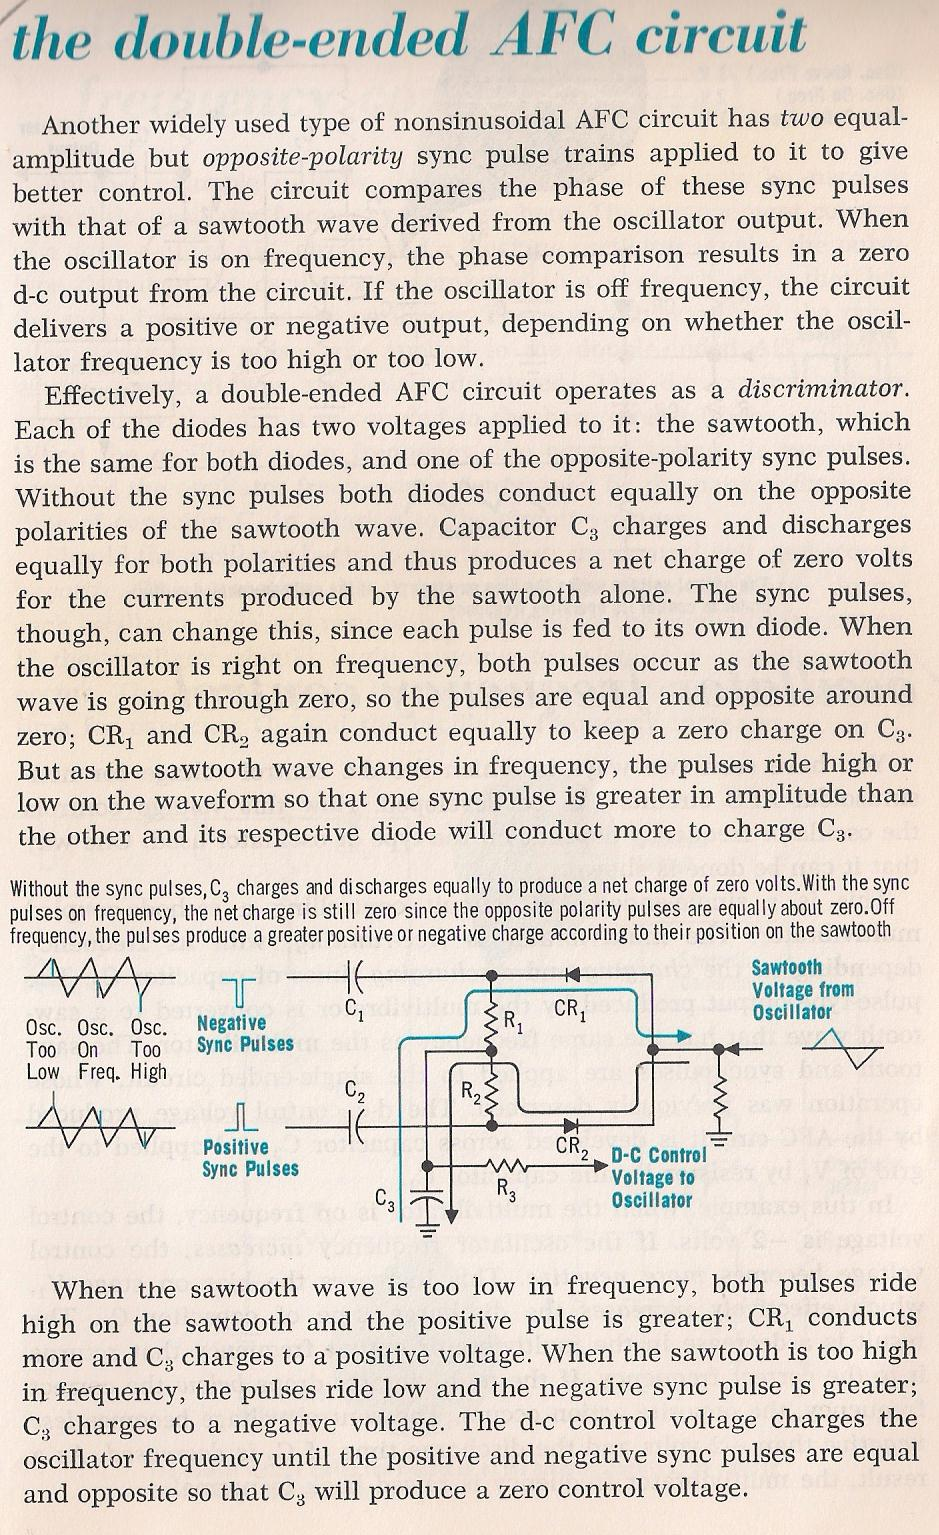 Auxiliary Circuits Negative Voltage Circuit Schematic 036 The Double Ended Afc By Larry E Gugle K4rfe